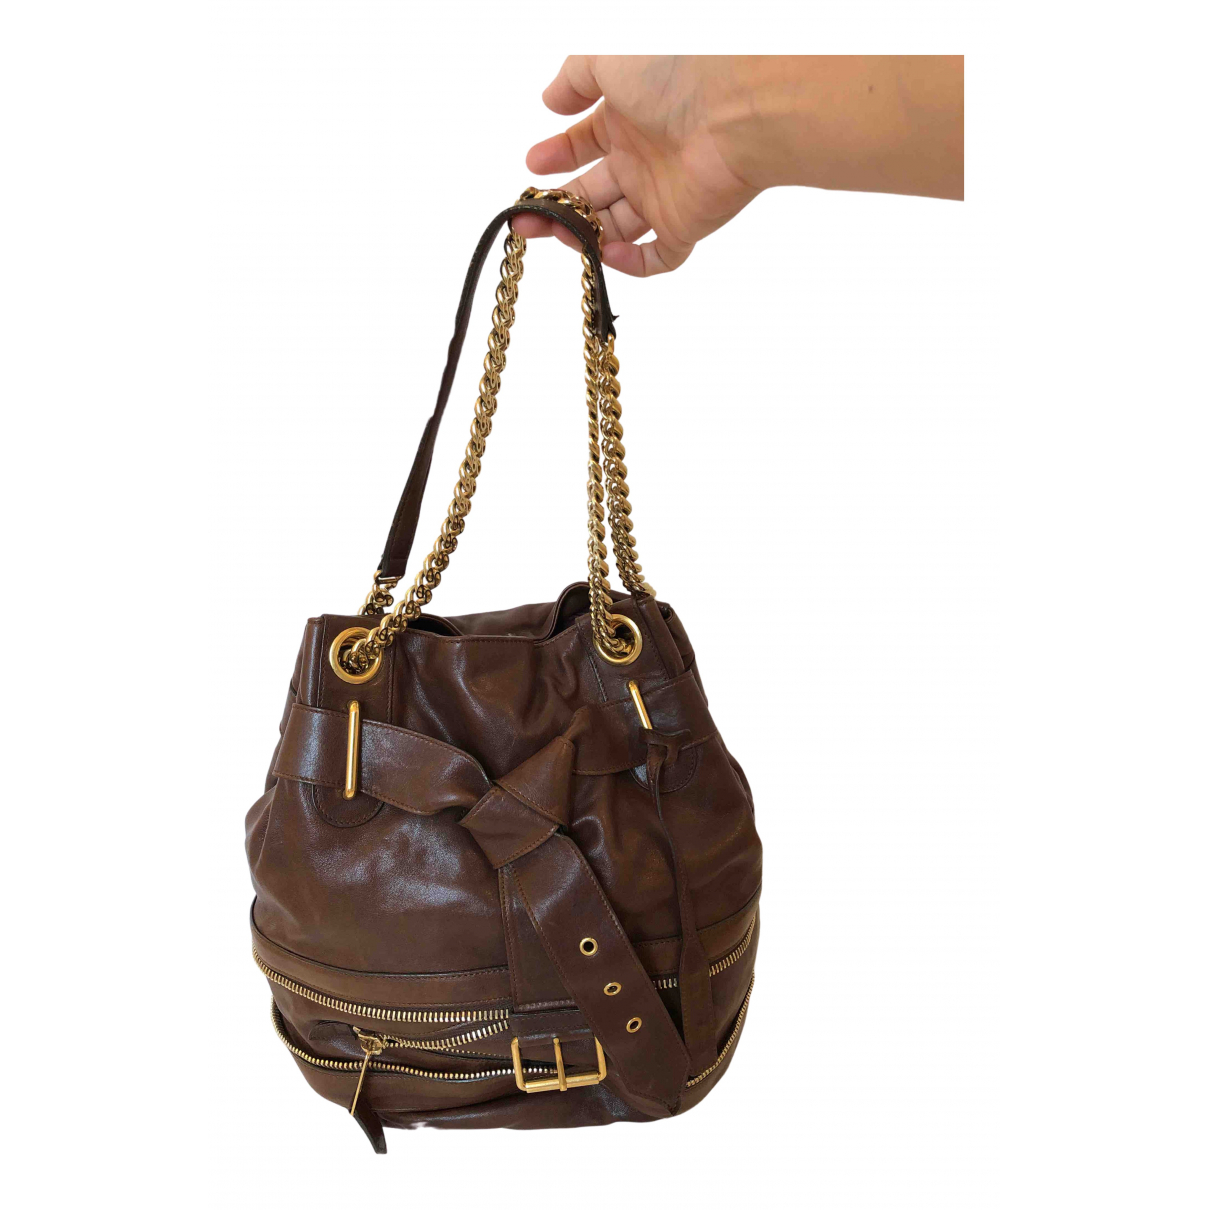 Alexander Mcqueen N Brown Leather handbag for Women N